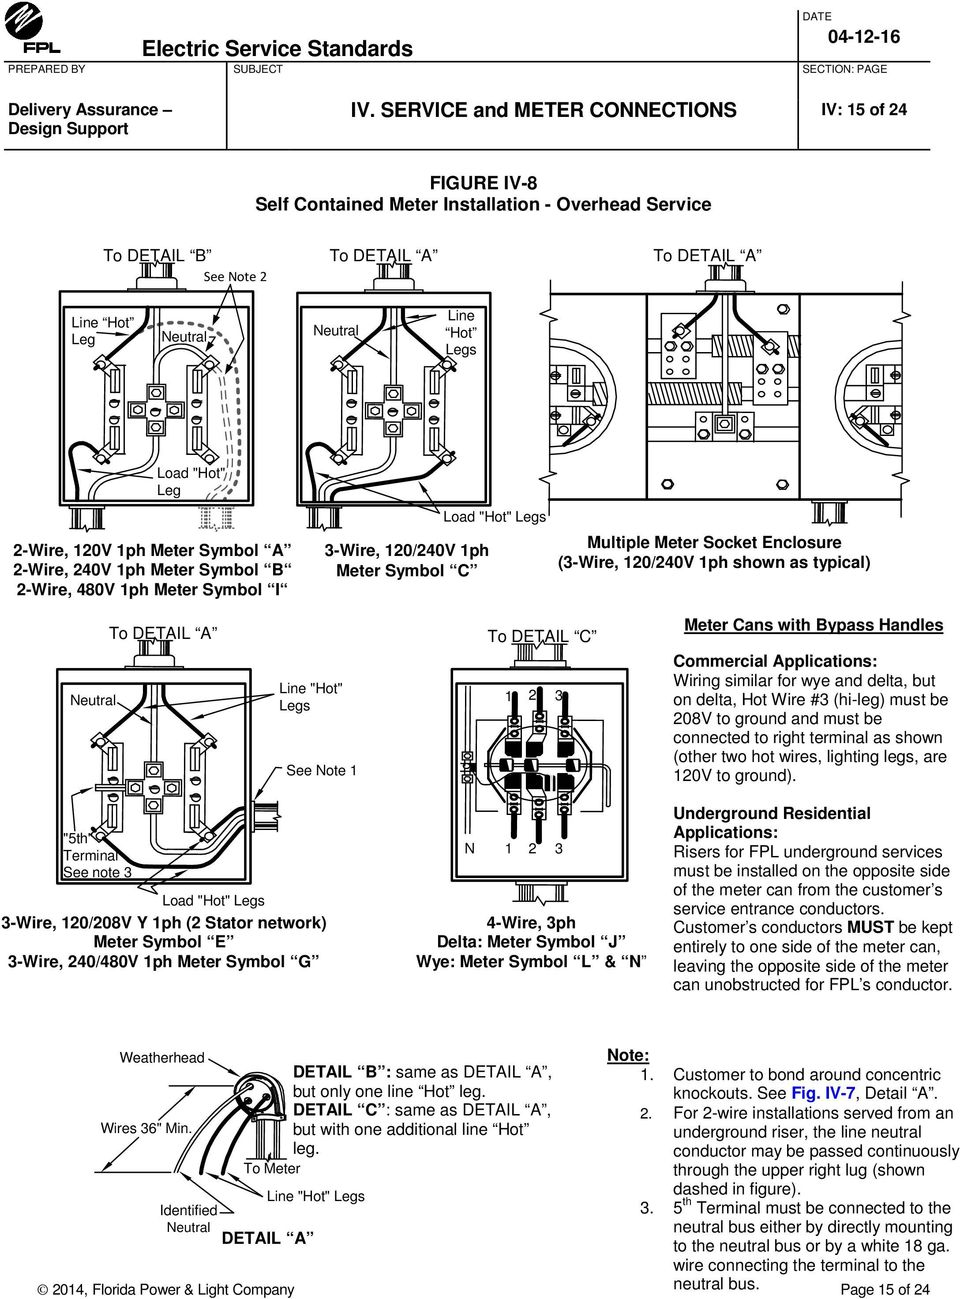 Electric Service Standards Pdf Wiring Diagram C Neutral Wire Will Be Connected To Typical Detail A Line Hot Legs 1 2